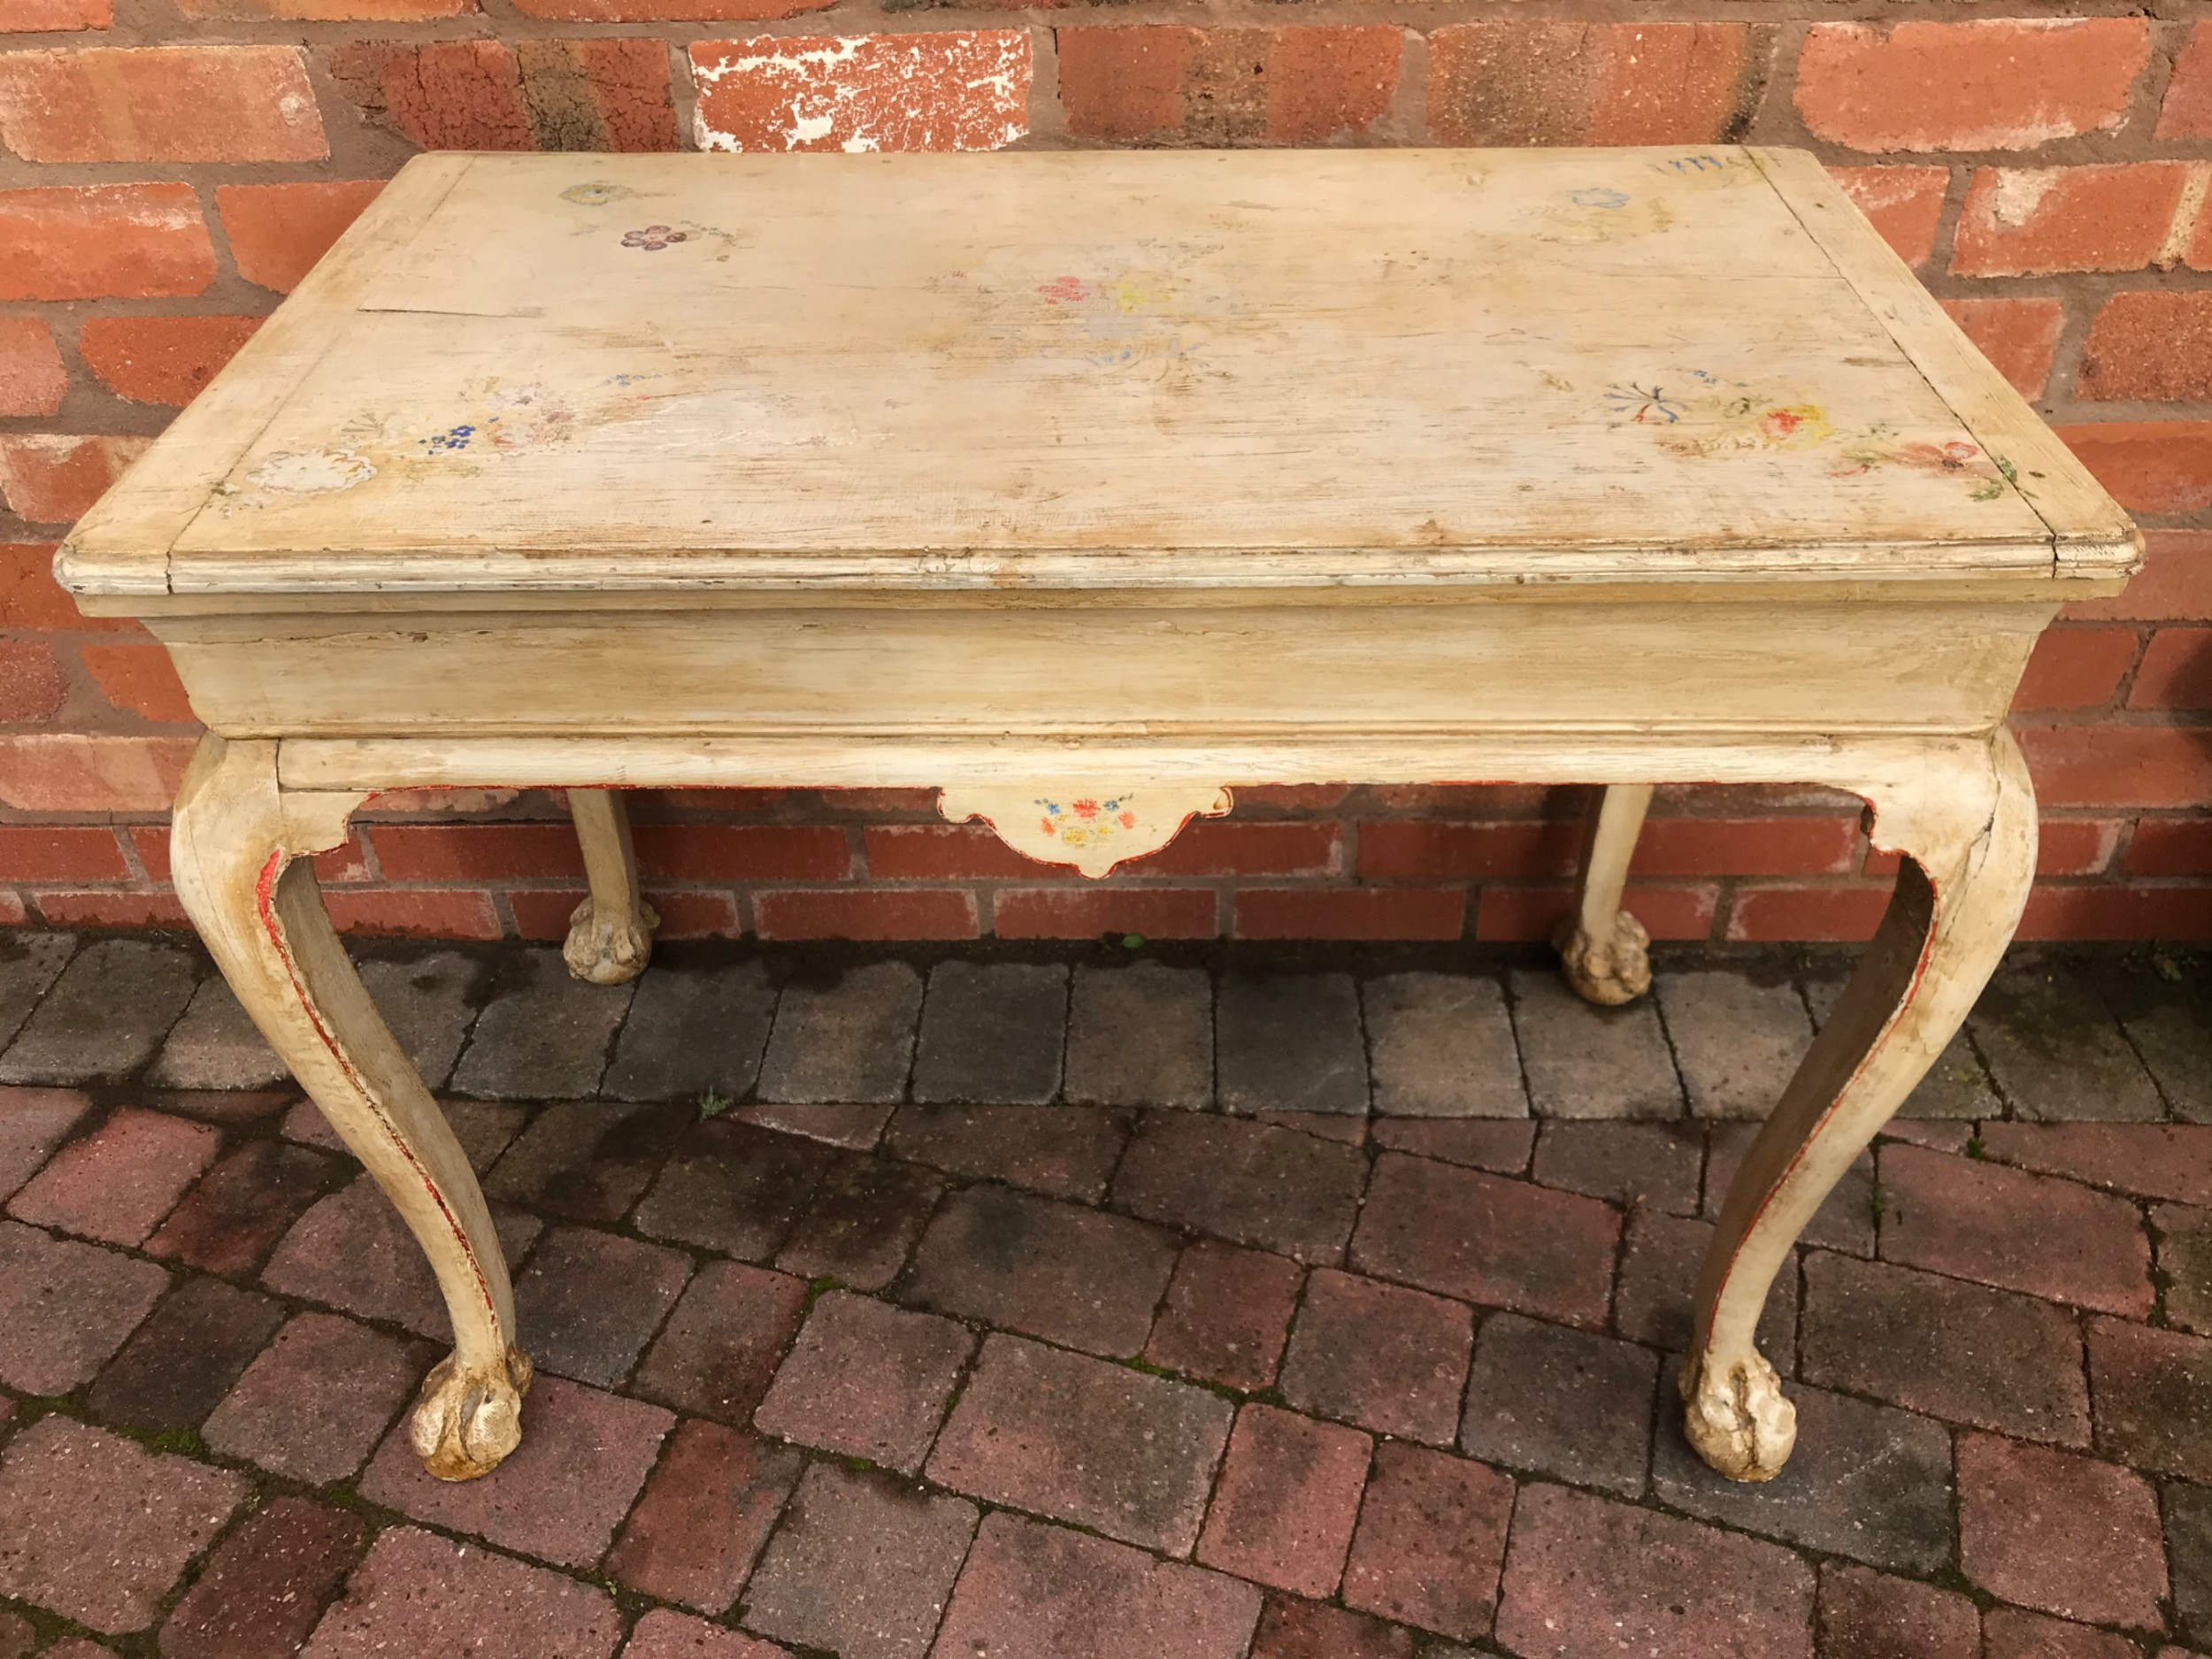 a rare french provincial regence period painted table